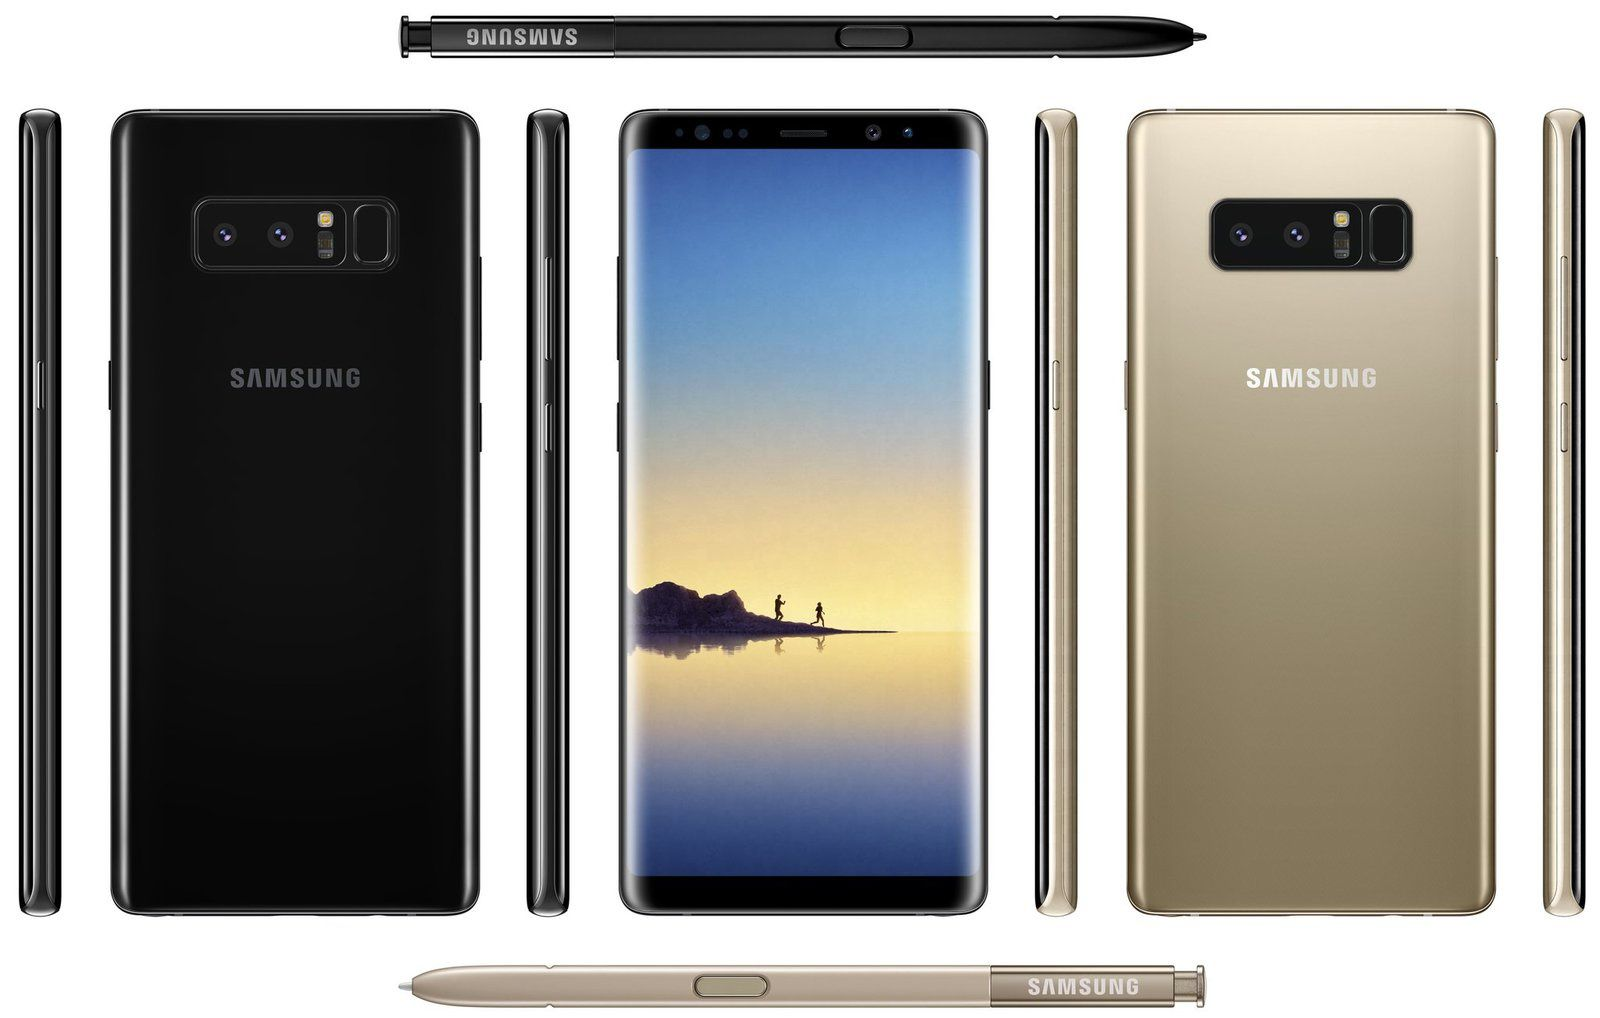 Le Samsung Galaxy Note 8 Arrive Equipons